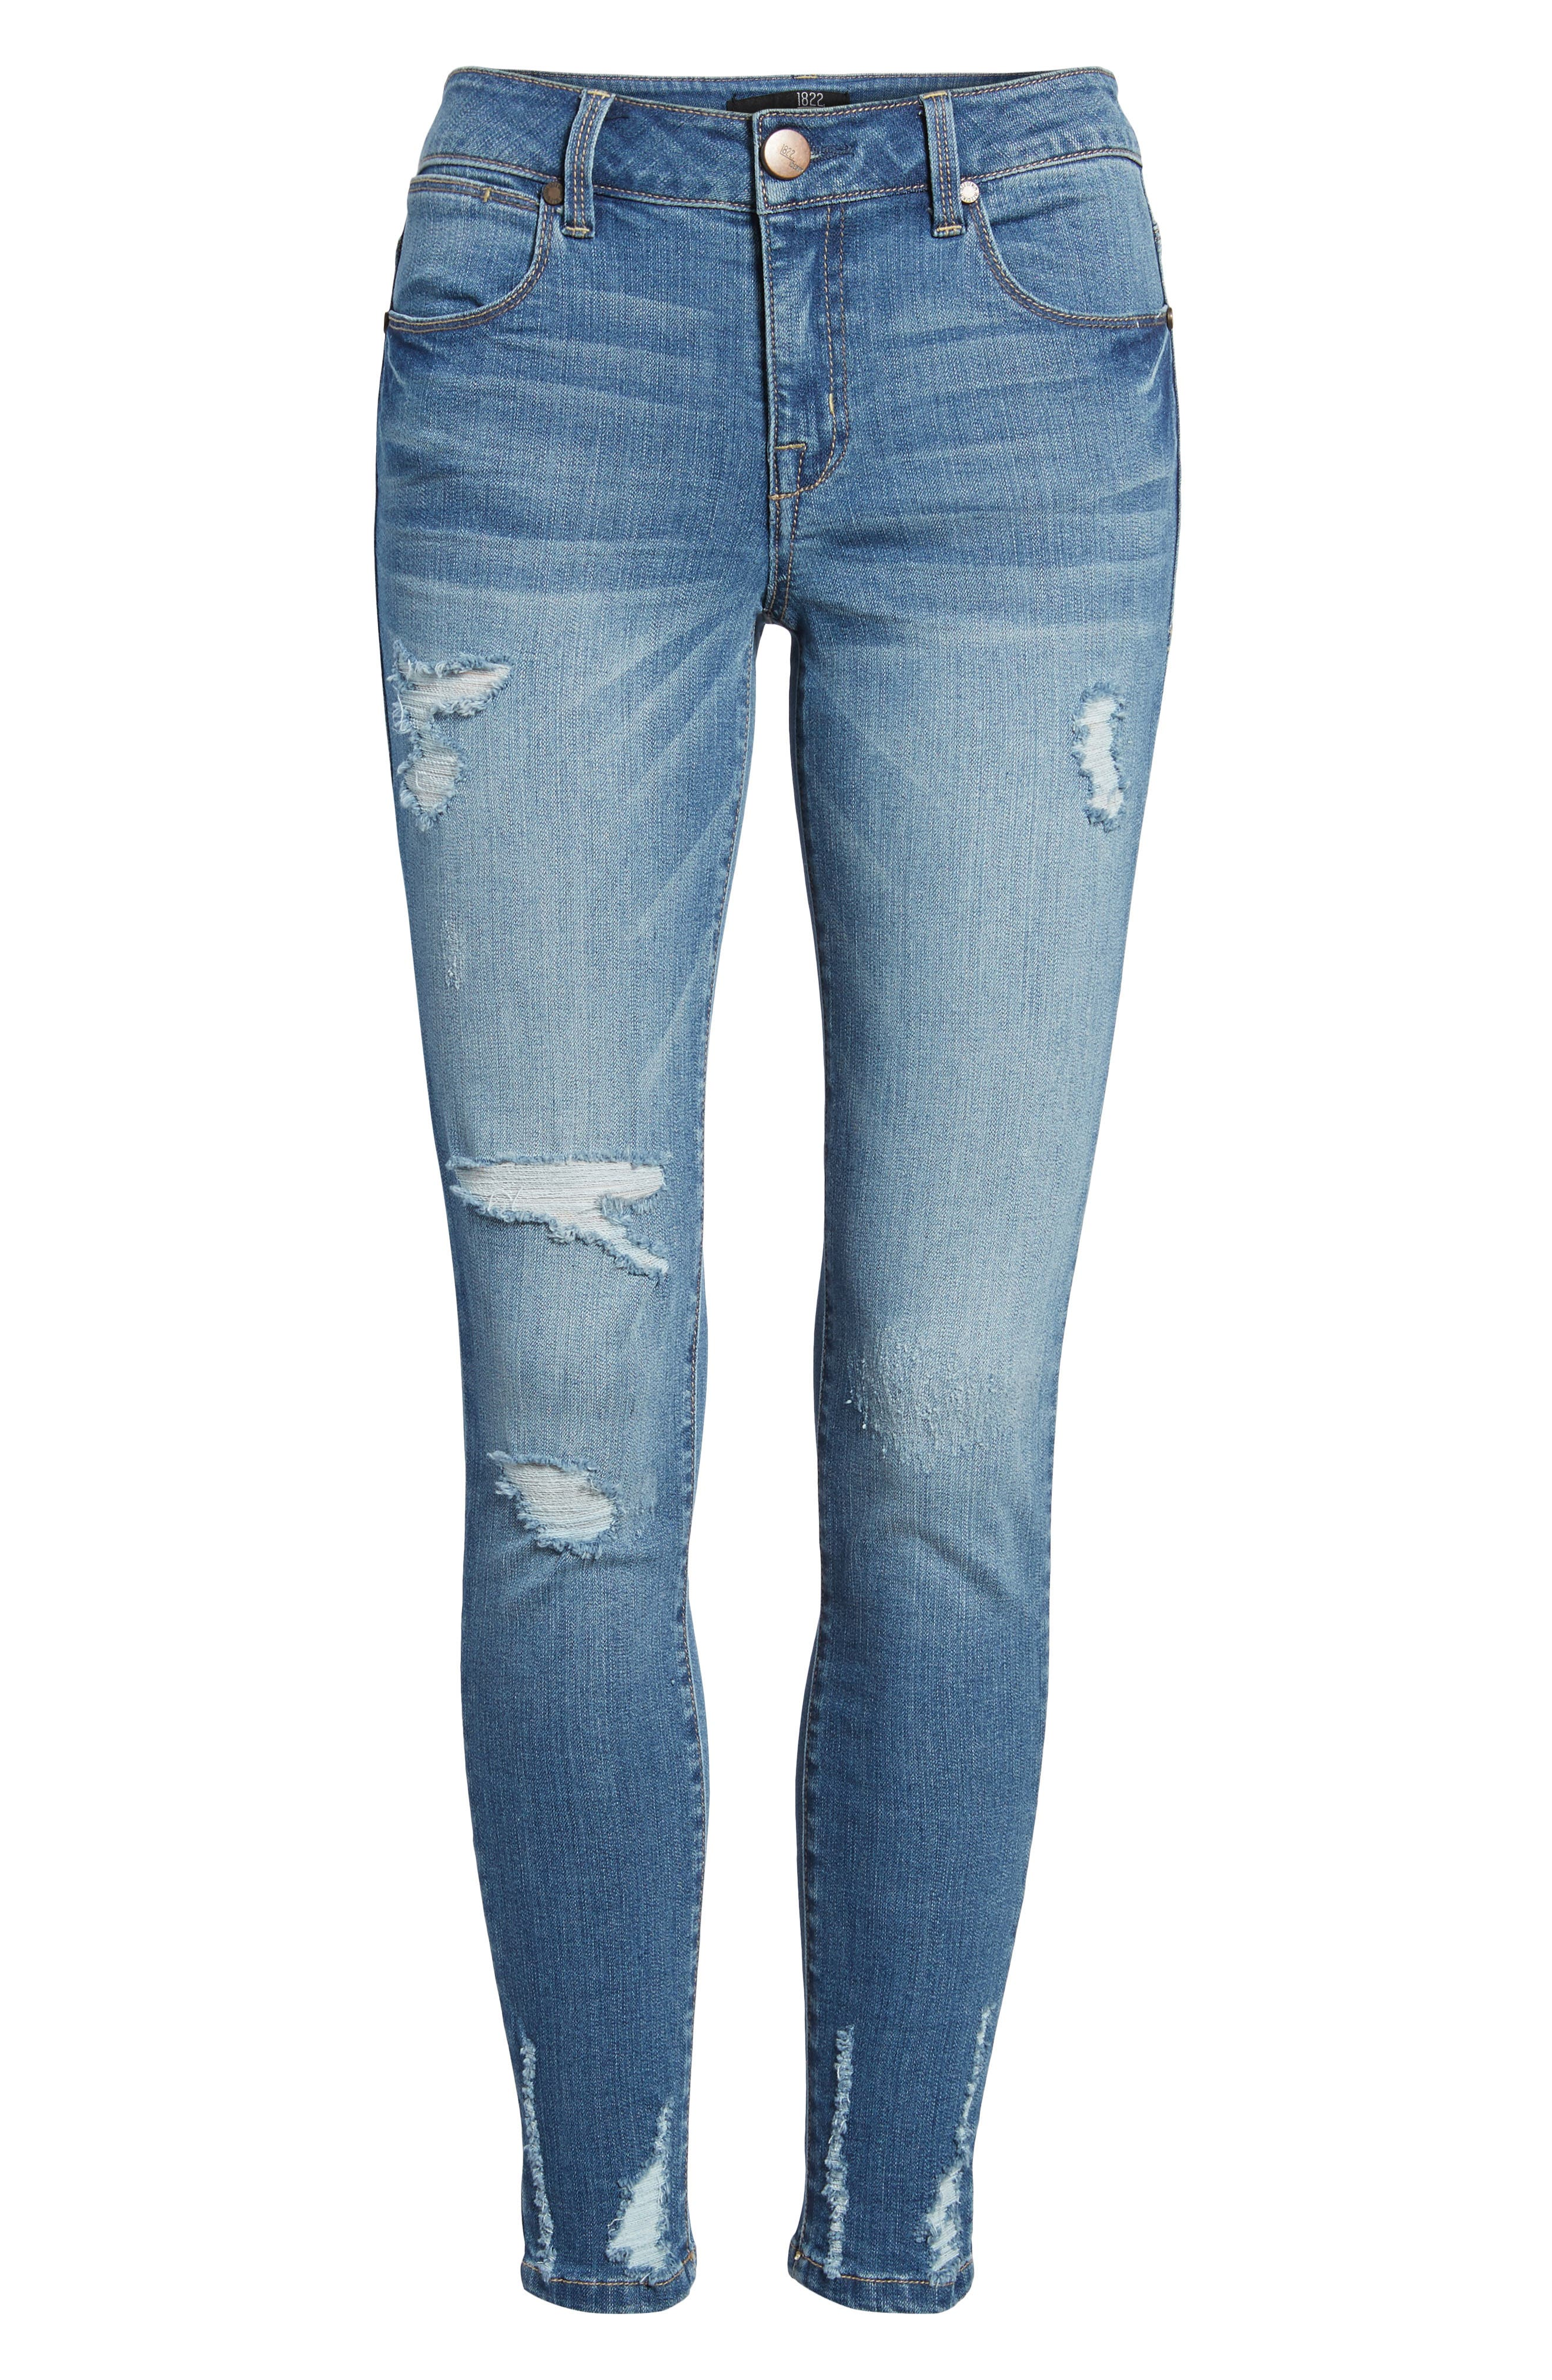 Ripped Skinny Ankle Jeans,                             Alternate thumbnail 7, color,                             423